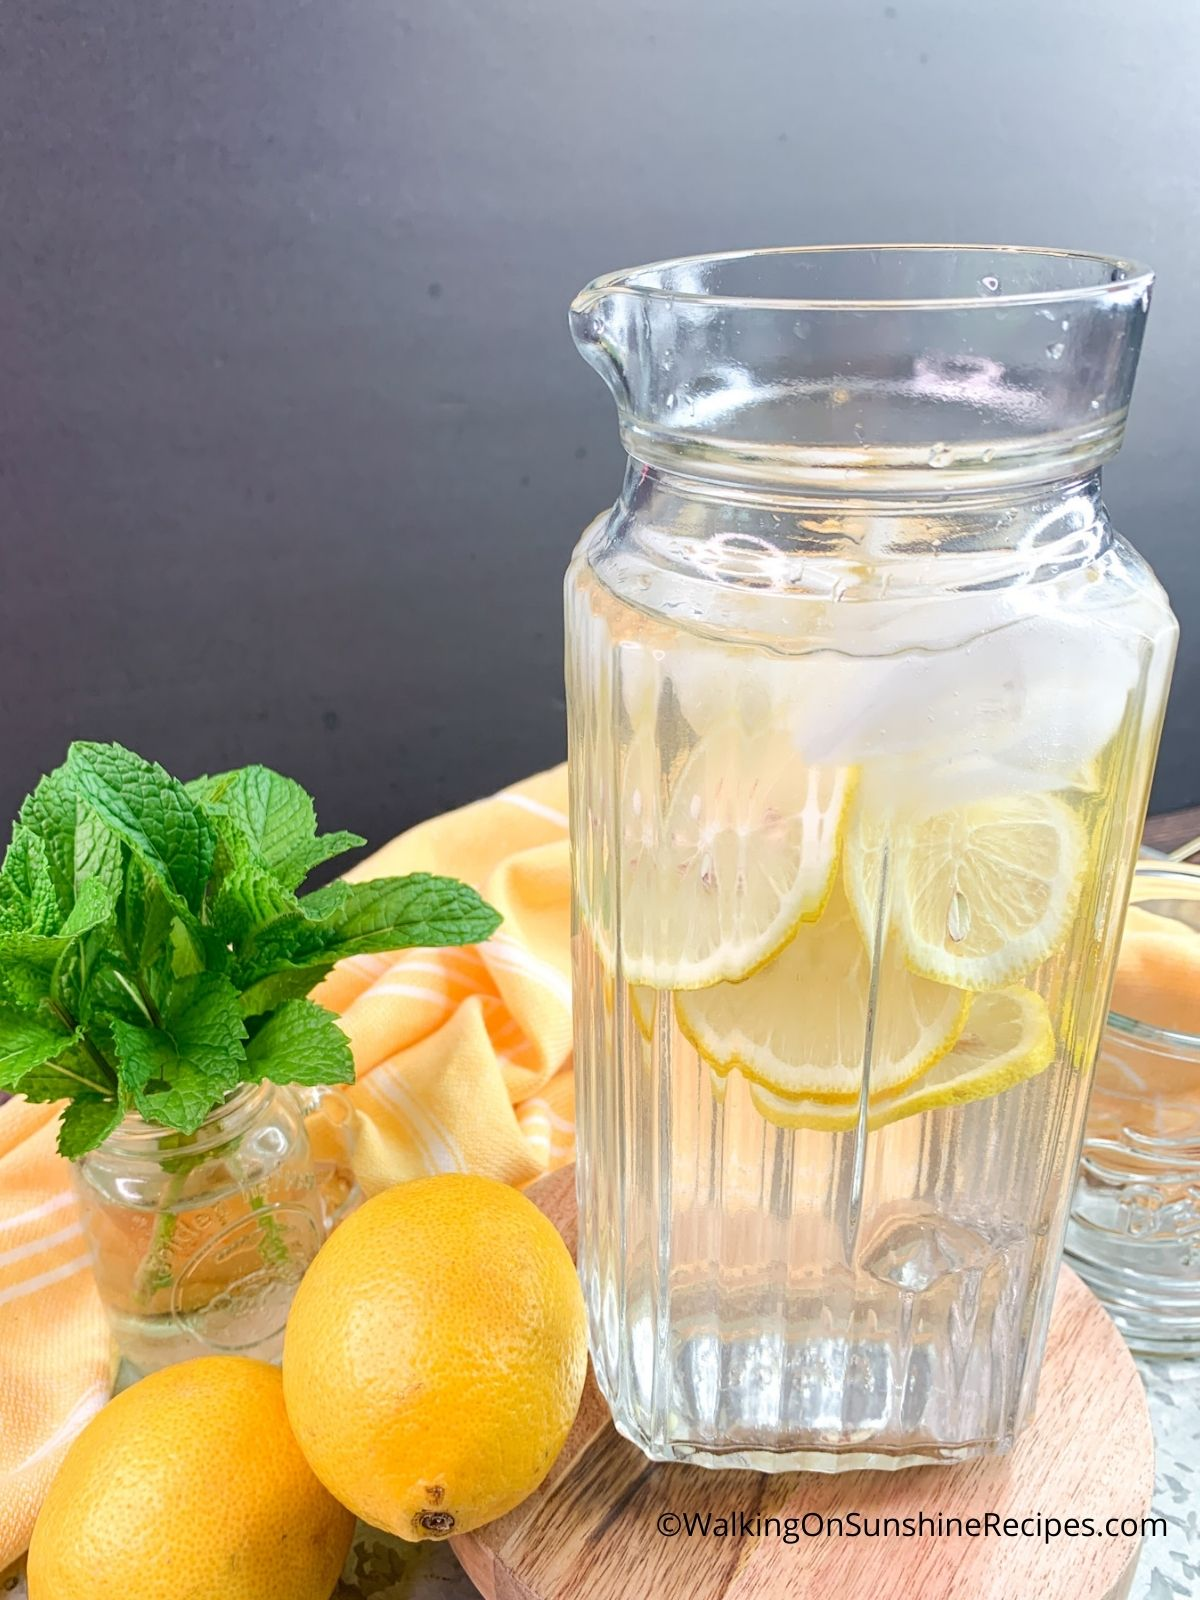 Pitcher of Lemon Flavored Water.